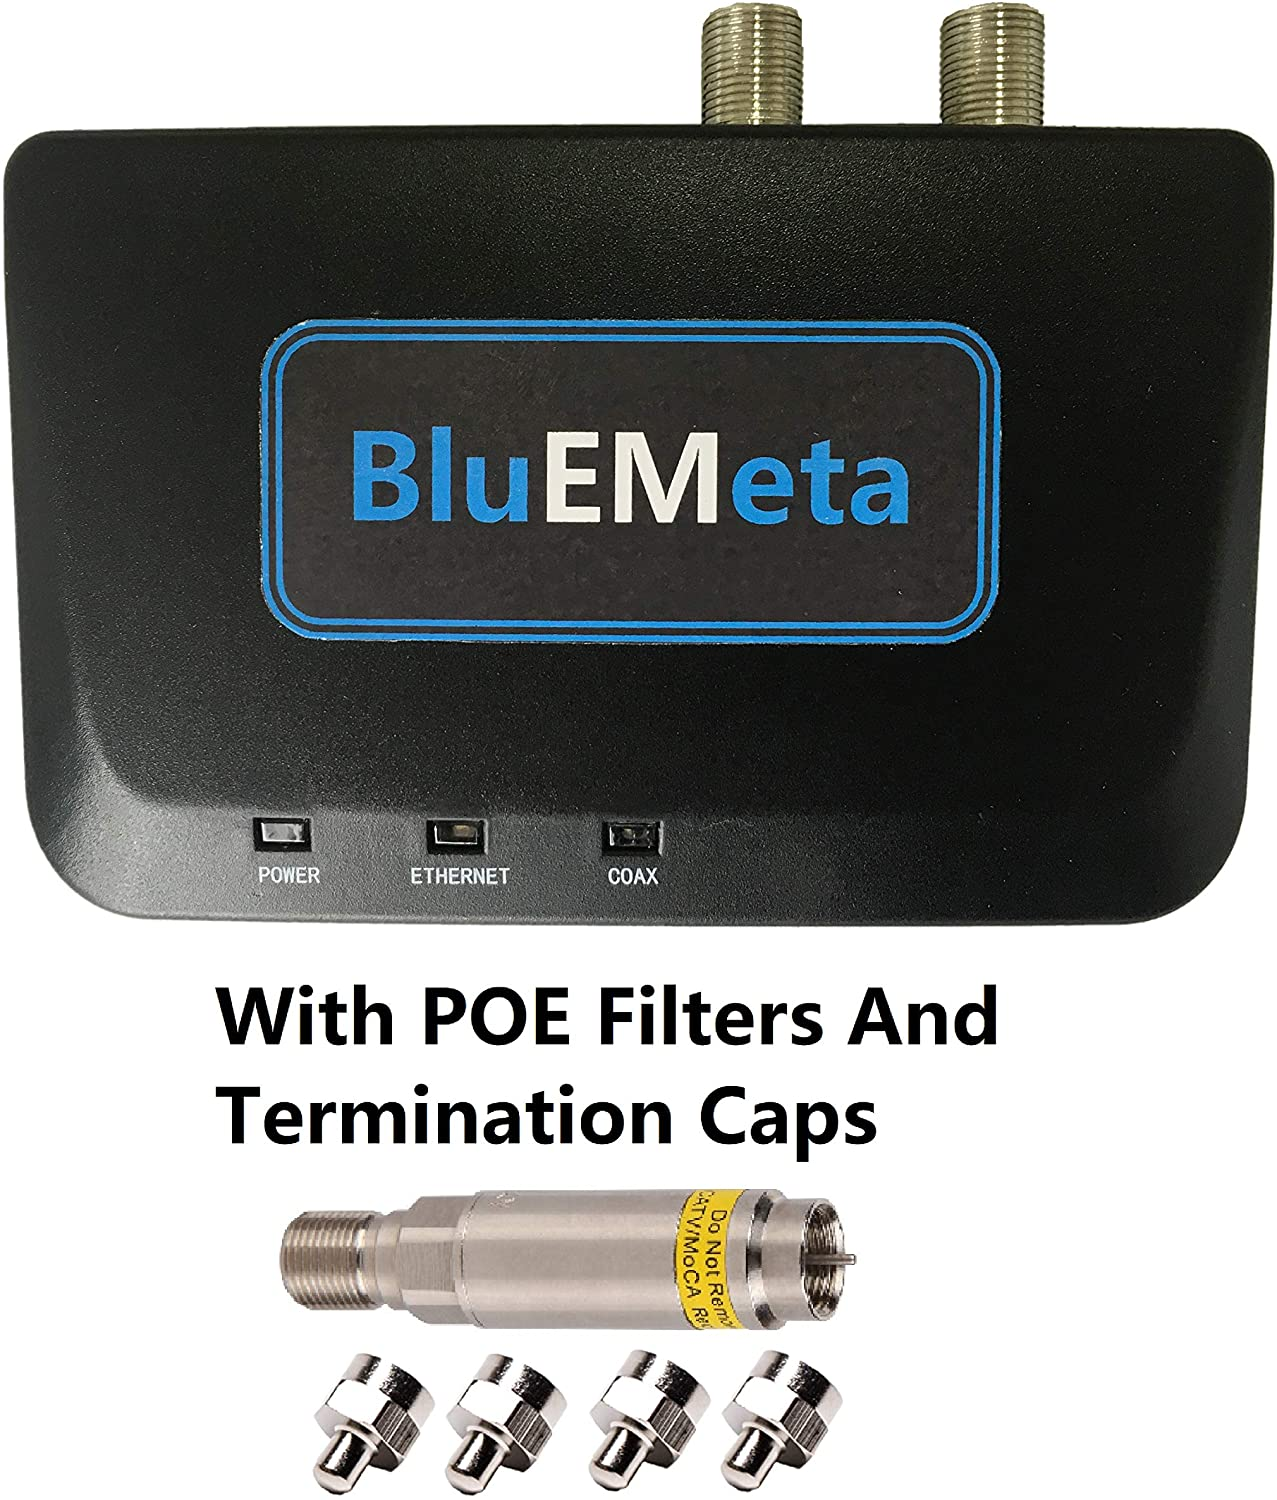 BluEMeta MoCA Adapters Bonded Coax to Ethernet Adapter Kit